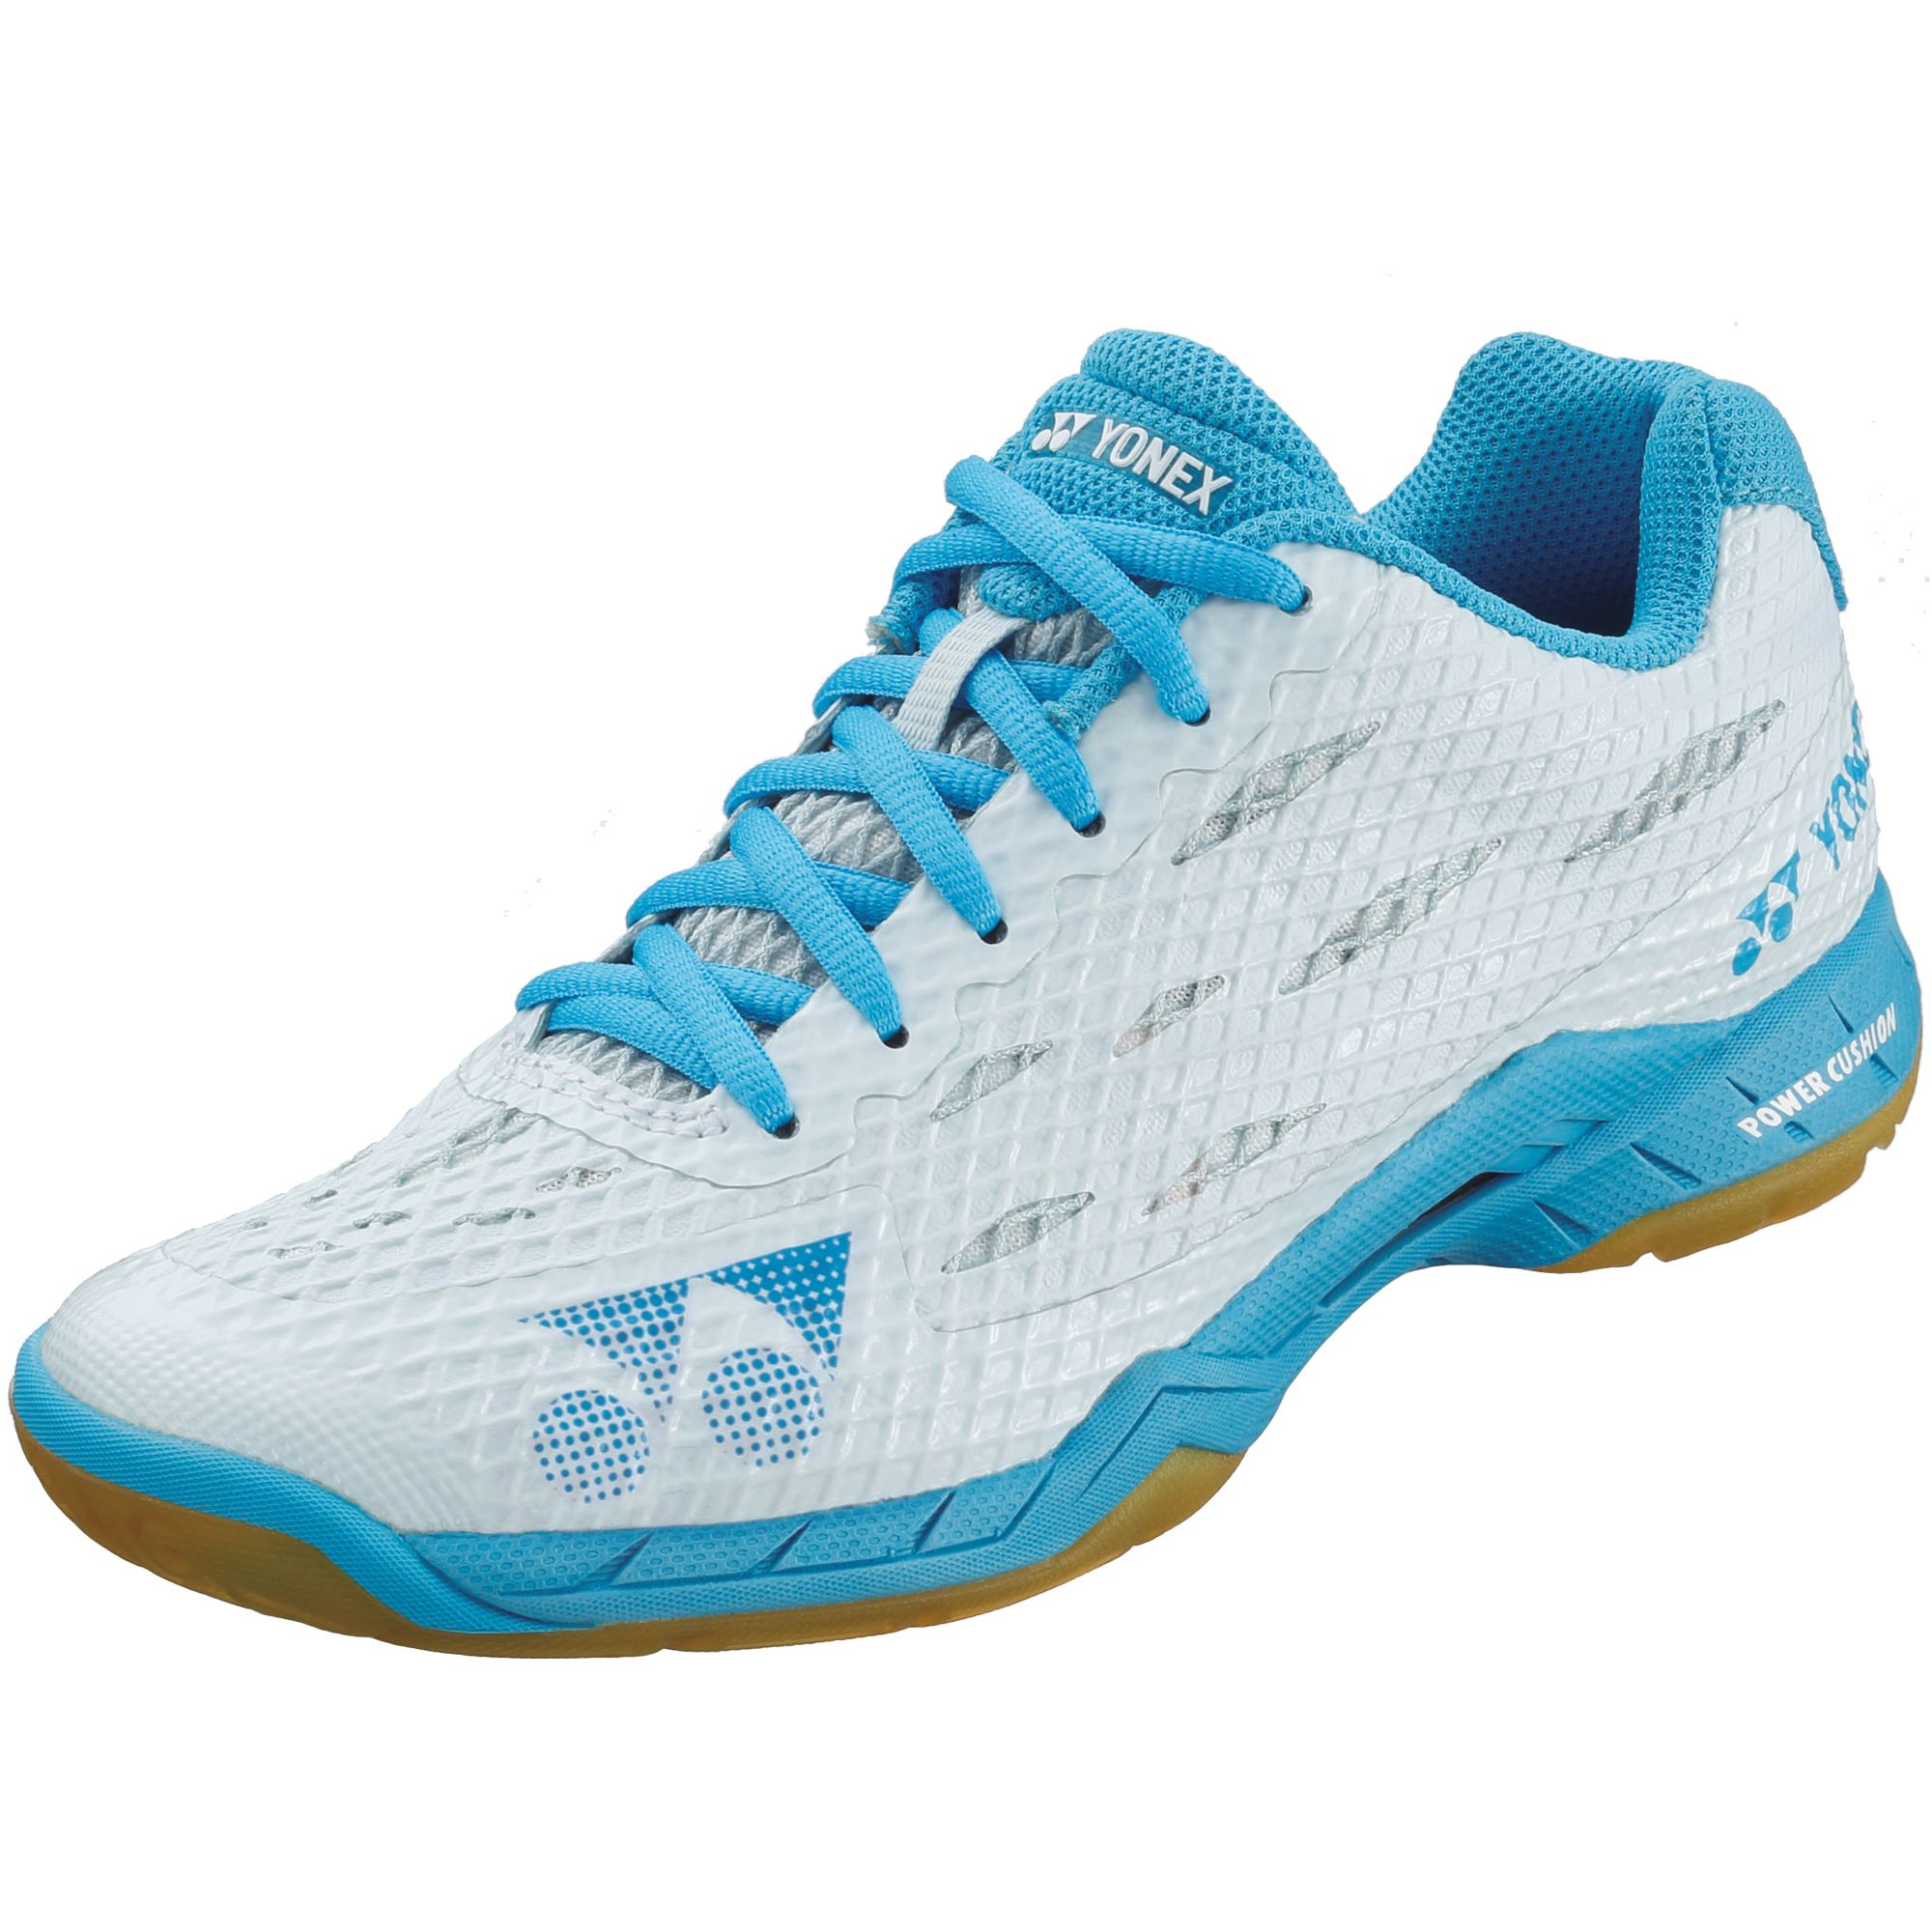 Yonex Power Cushion Aerus Ladies Badminton Shoes ...